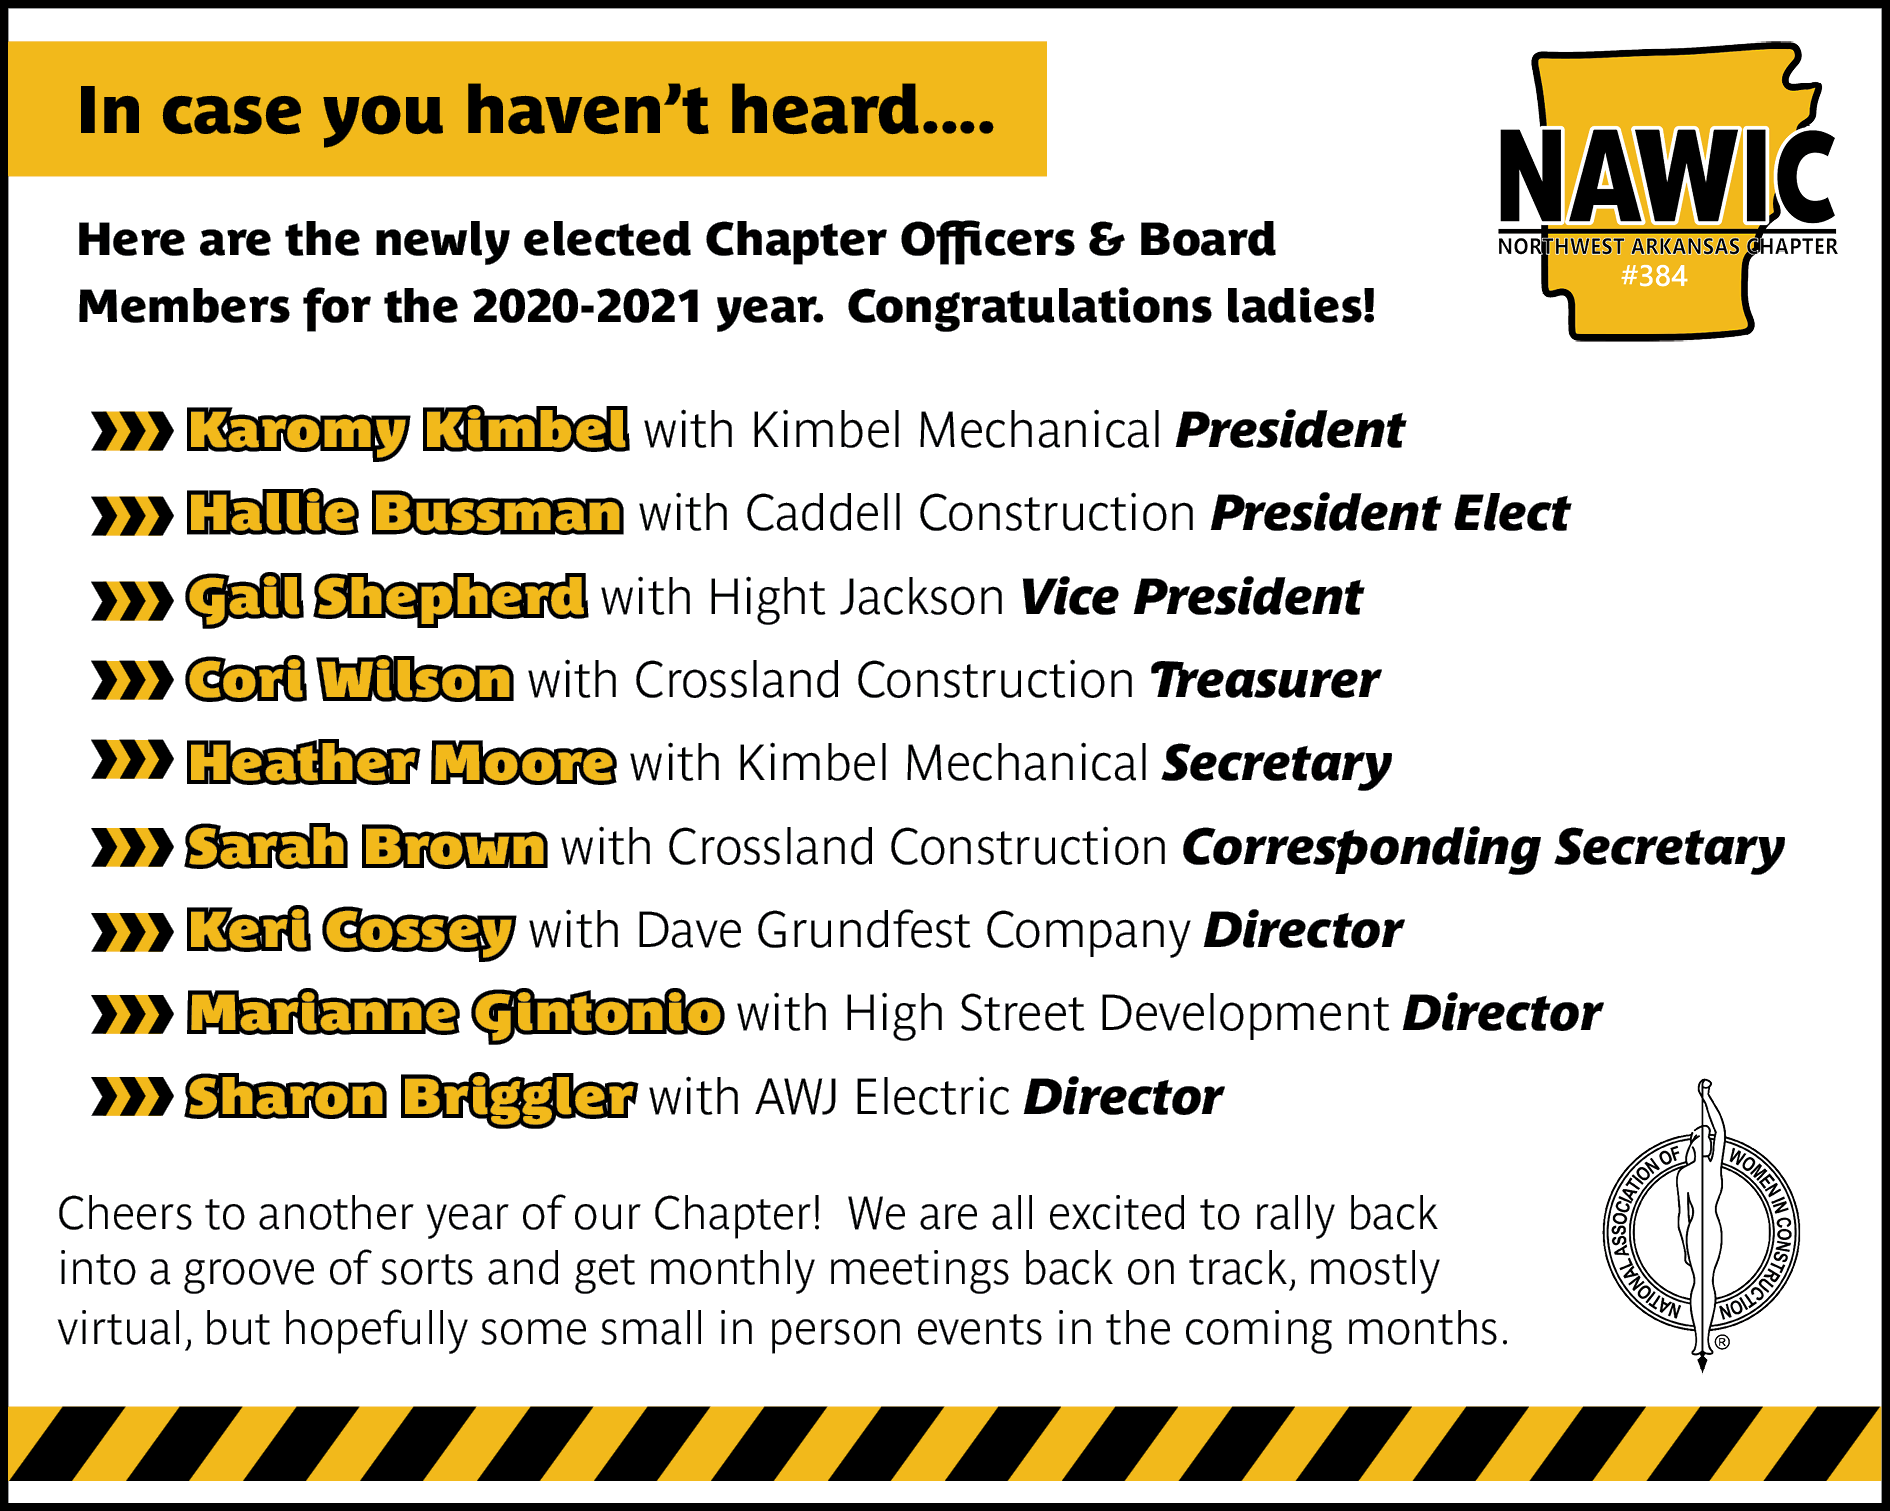 2020-2021 NAWIC Northwest Arkansas Chapter Officers and Board Members